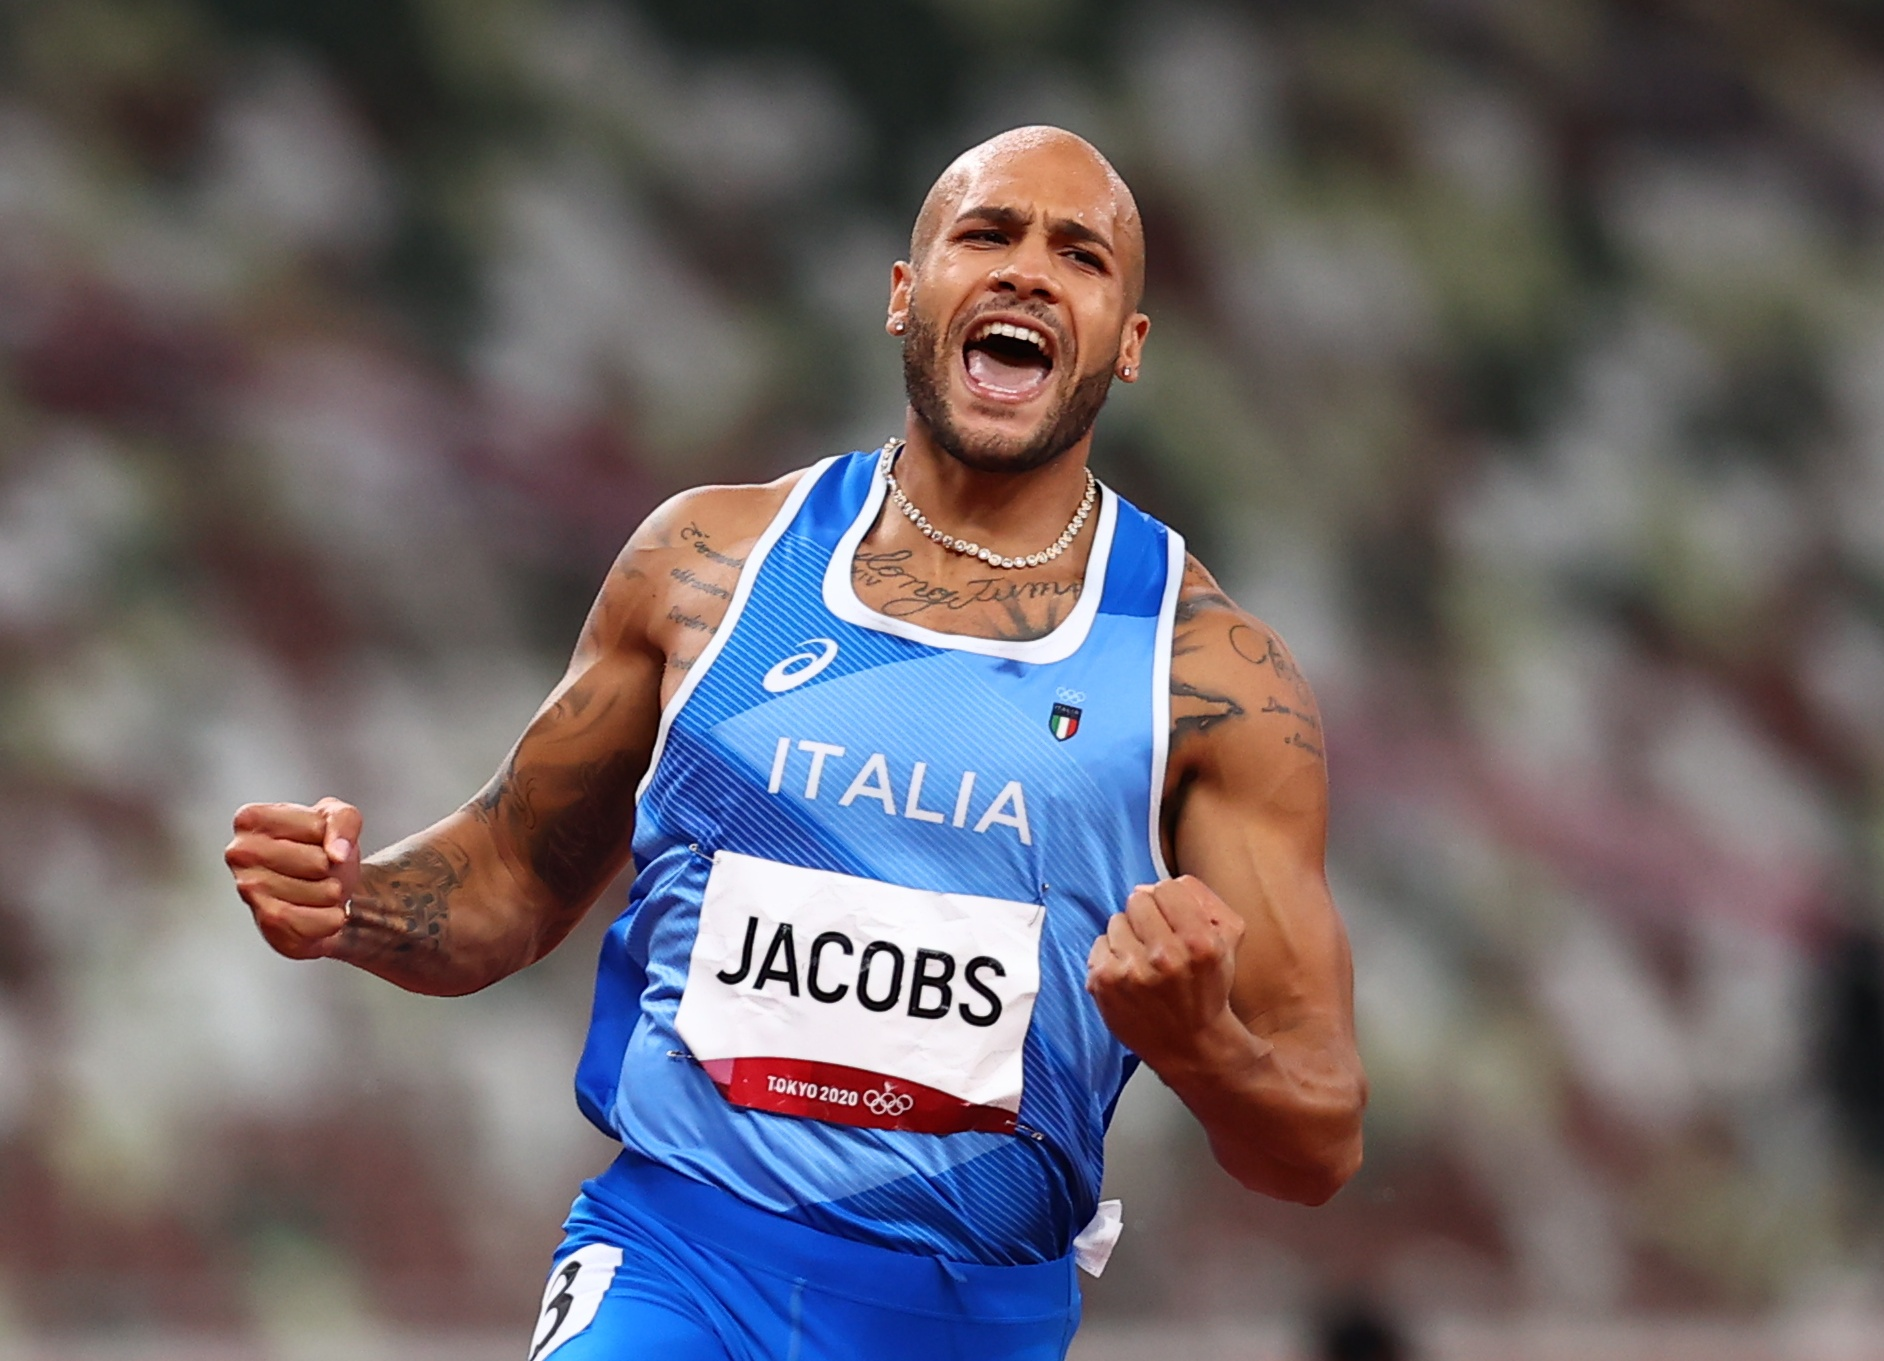 Tokyo 2020 Olympics - Athletics - Men's 100m - Final - OLS - Olympic Stadium, Tokyo, Japan - August 1, 2021. Lamont Marcell Jacobs of Italy celebrates after winning gold REUTERS/Andrew Boyers